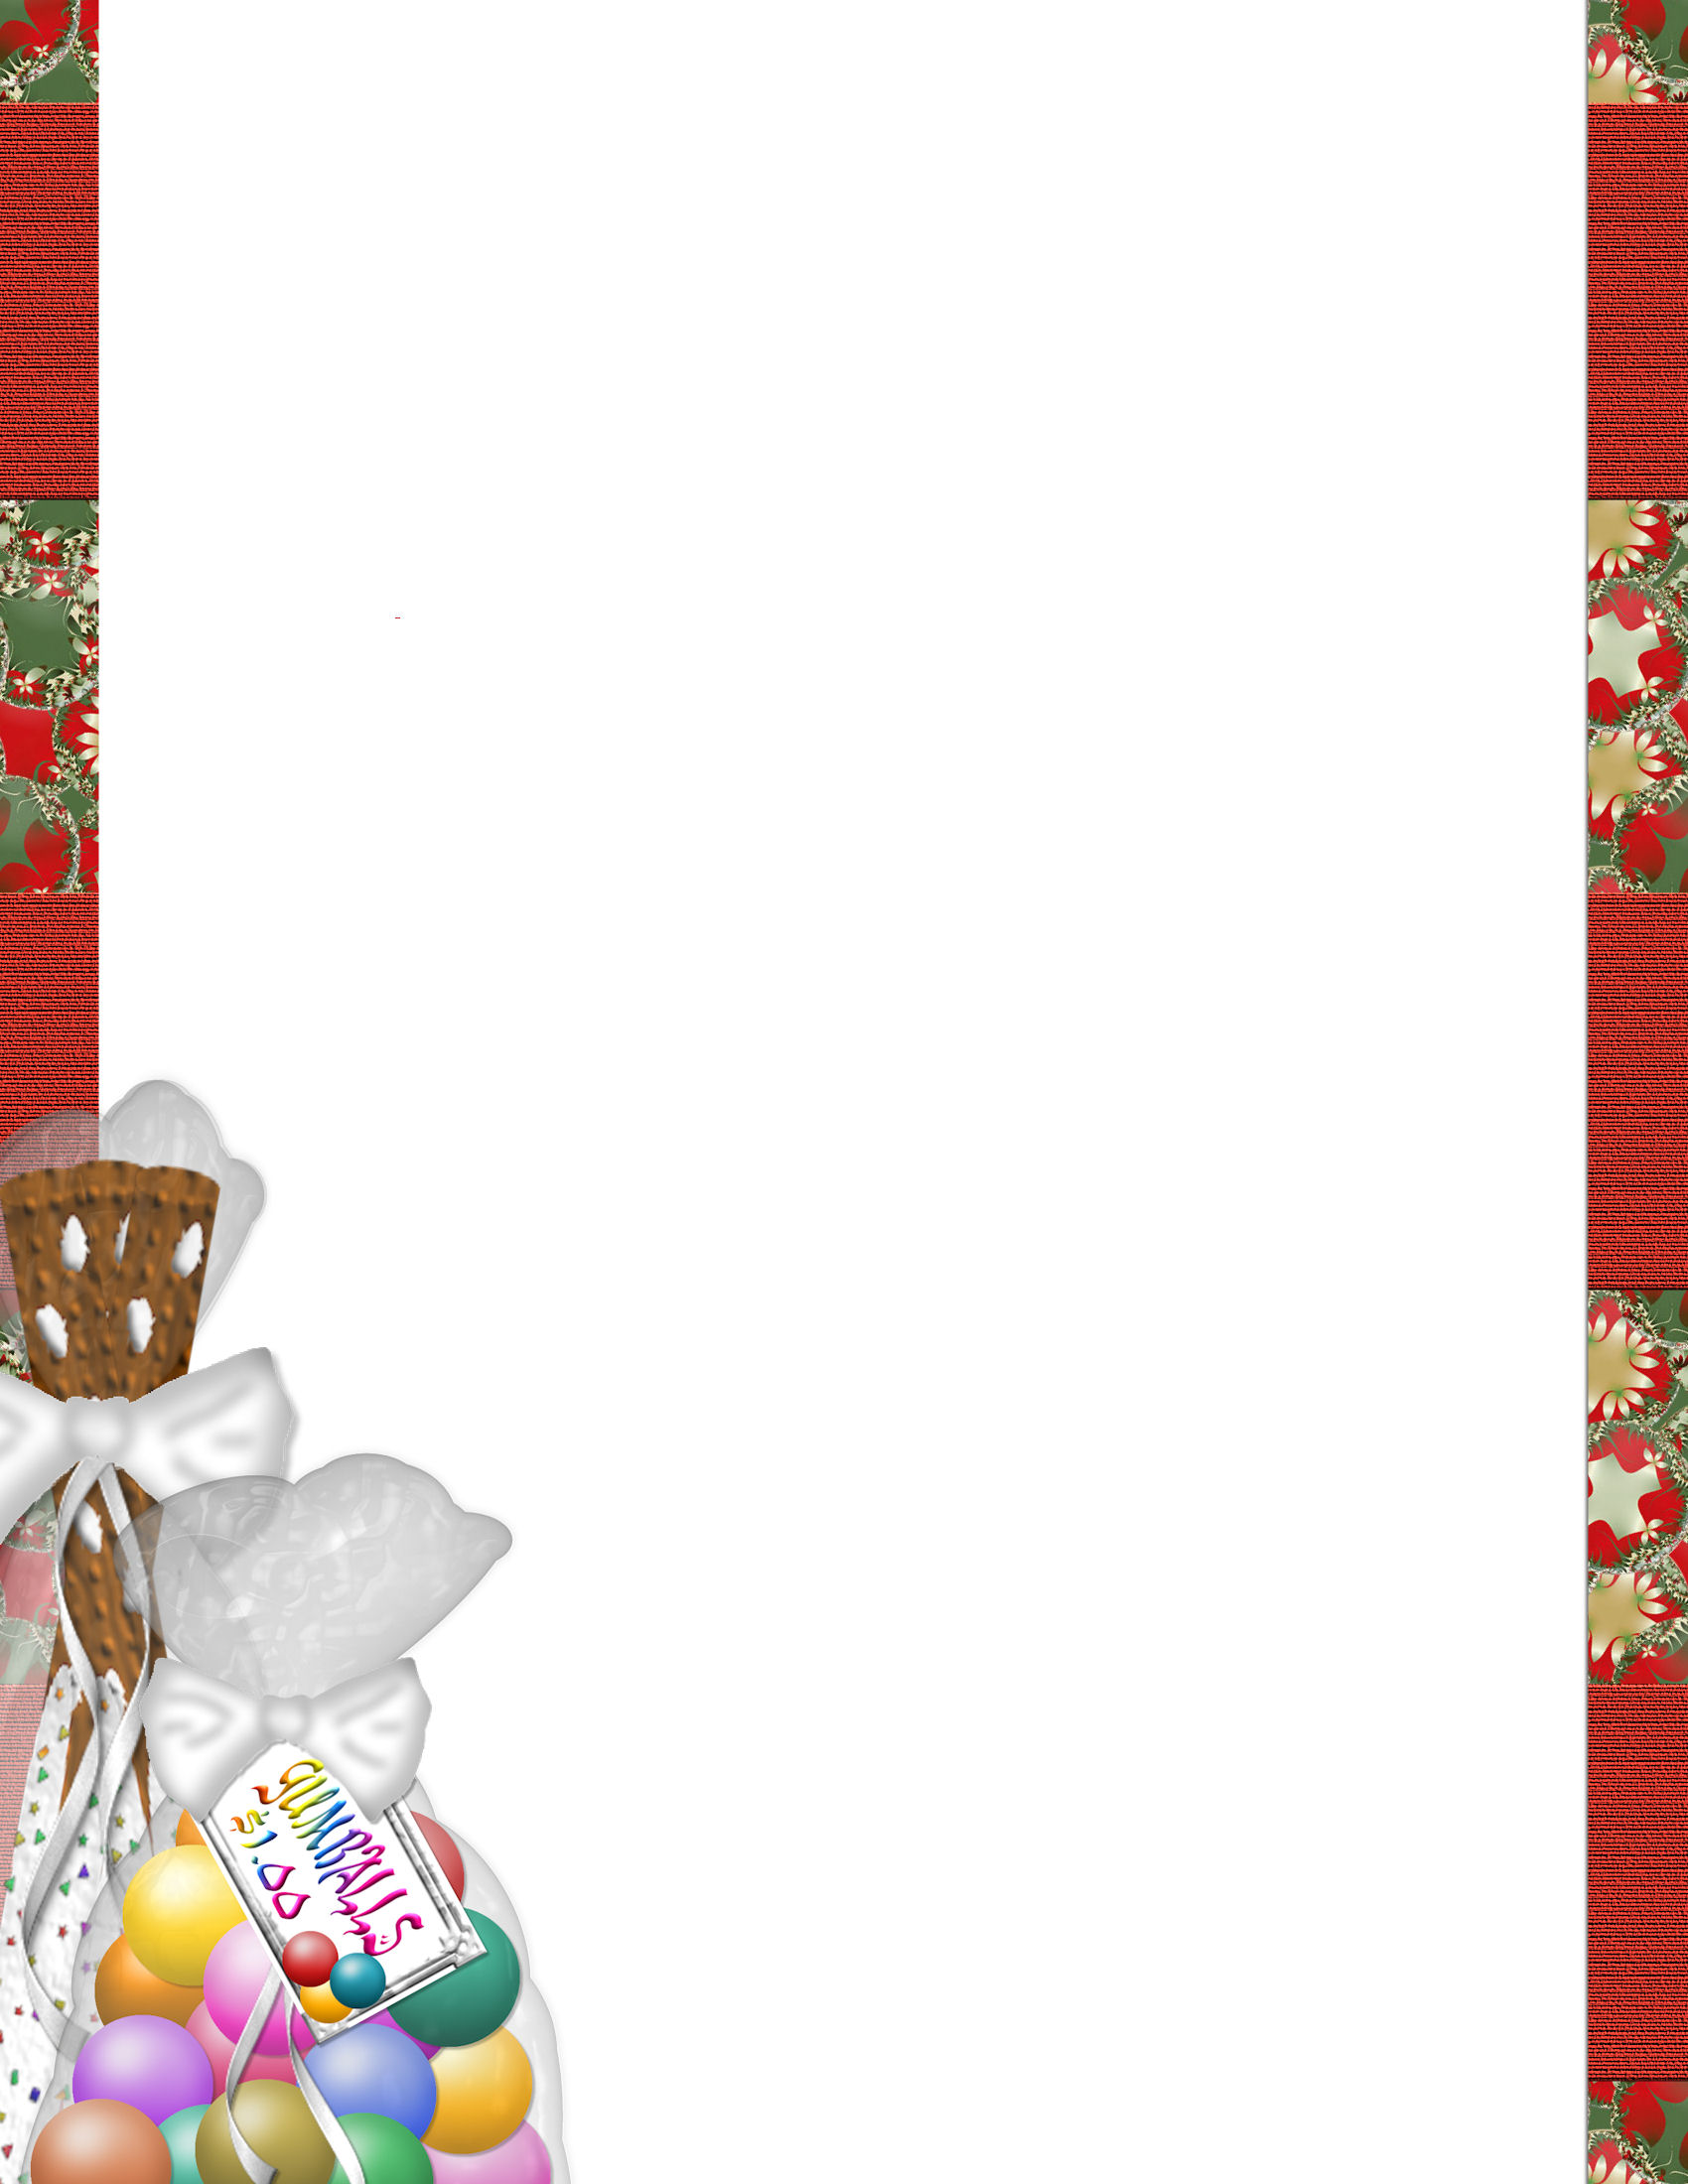 christmas727 Christmas Letter Stationery Template on christmas letter format, christmas letter paper, christmas letter templates from santa, christmas stationery for word, christmas writing template, christmas letter designs, christmas letter stationary template, christmas morning letter from santa claus, christmas email stationery, christmas letter ideas, christmas note template, christmas memo template, christmas stationery product, christmas stationery borders, christmas alphabet templates, christmas letter templates to print out, christmas letter template with lines, christian christmas letter templates, christmas letterhead stationery, christmas letterhead templates,